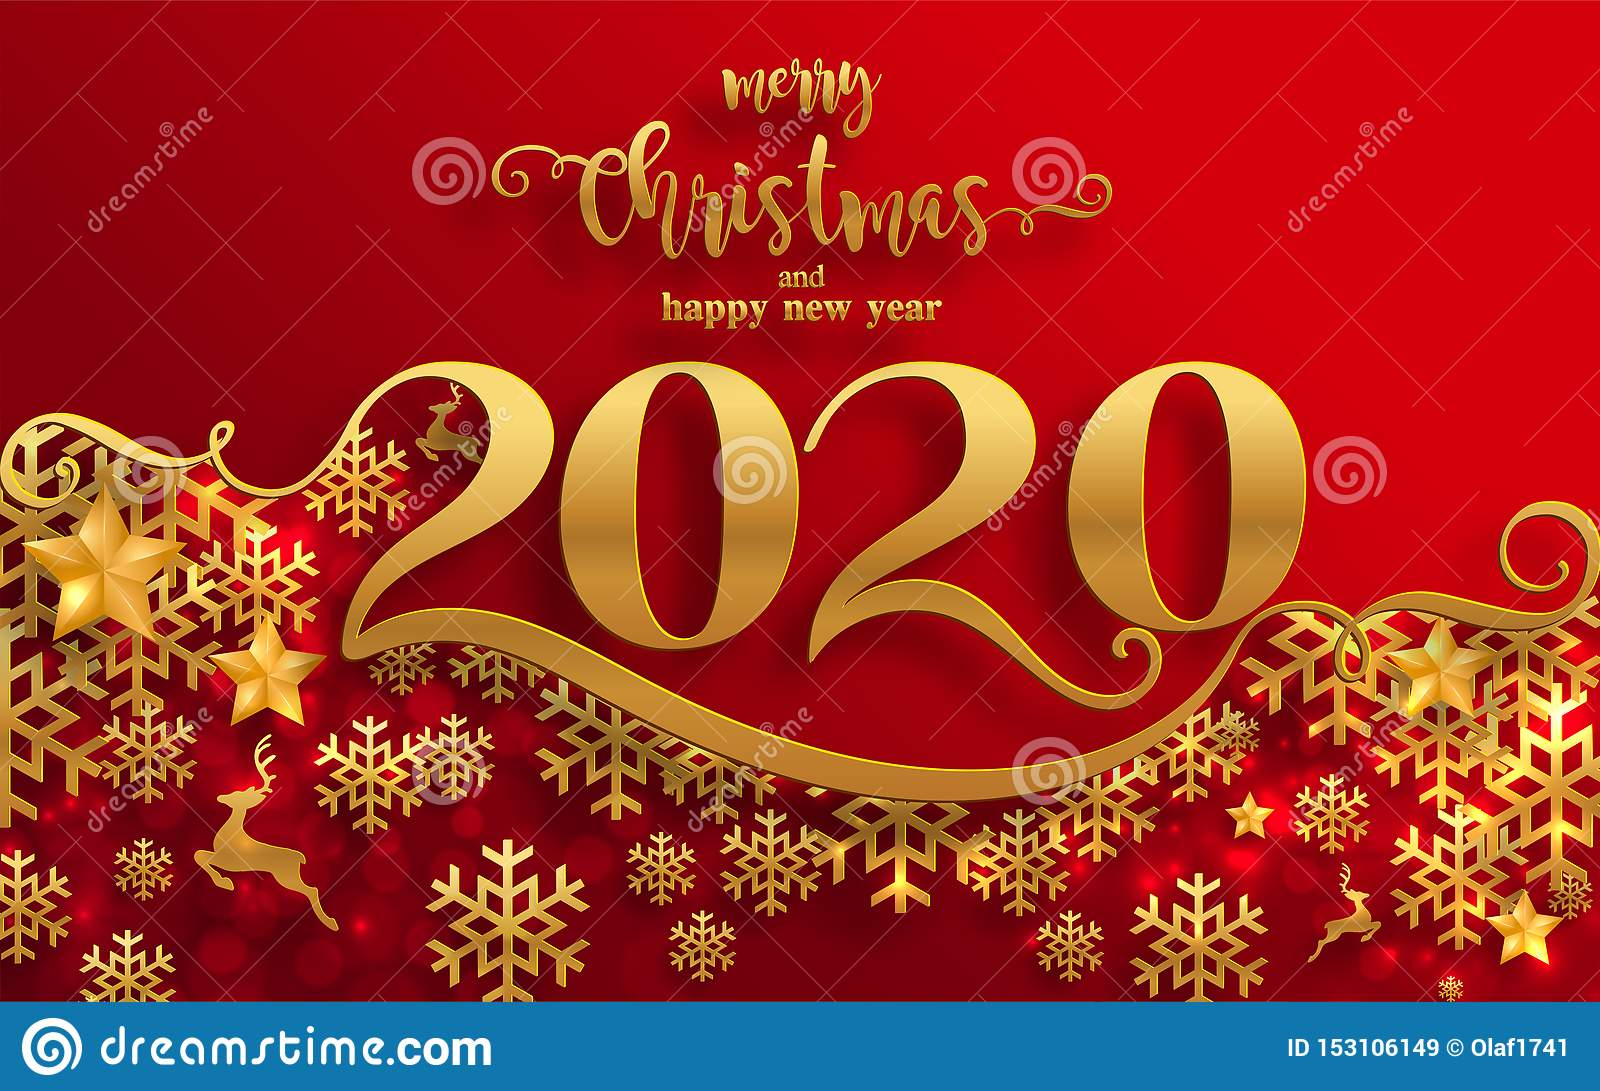 Merry Christmas Greetings And Happy New Year 2020 Stock ...